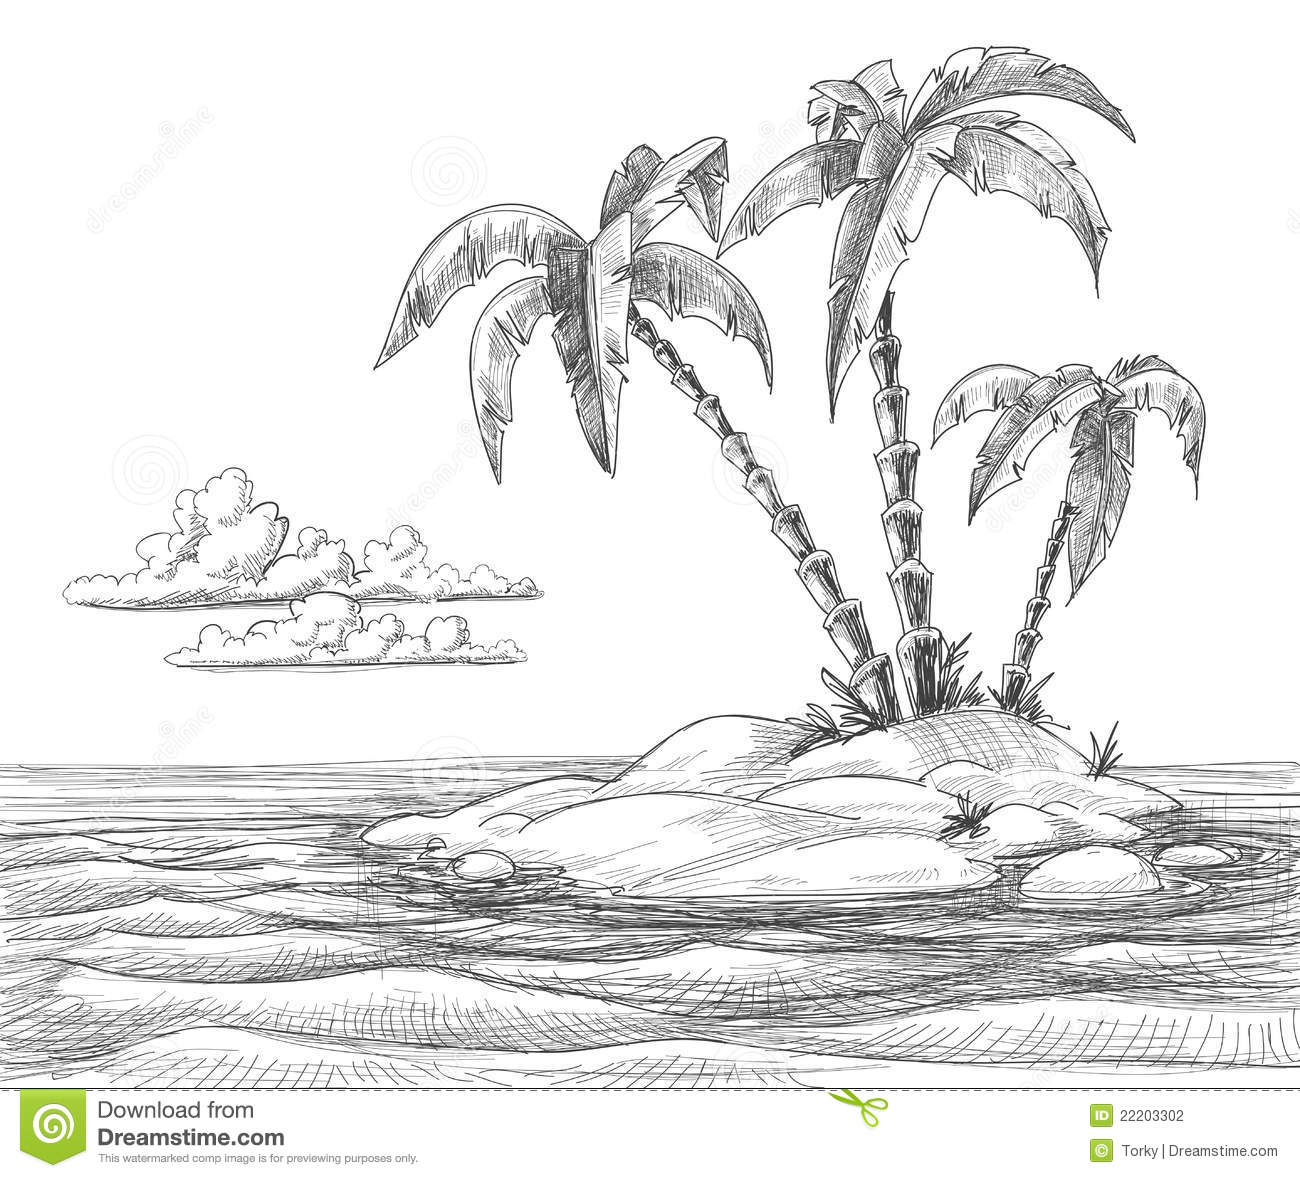 Drawn island Drawings Teardrop Landscape Bing images